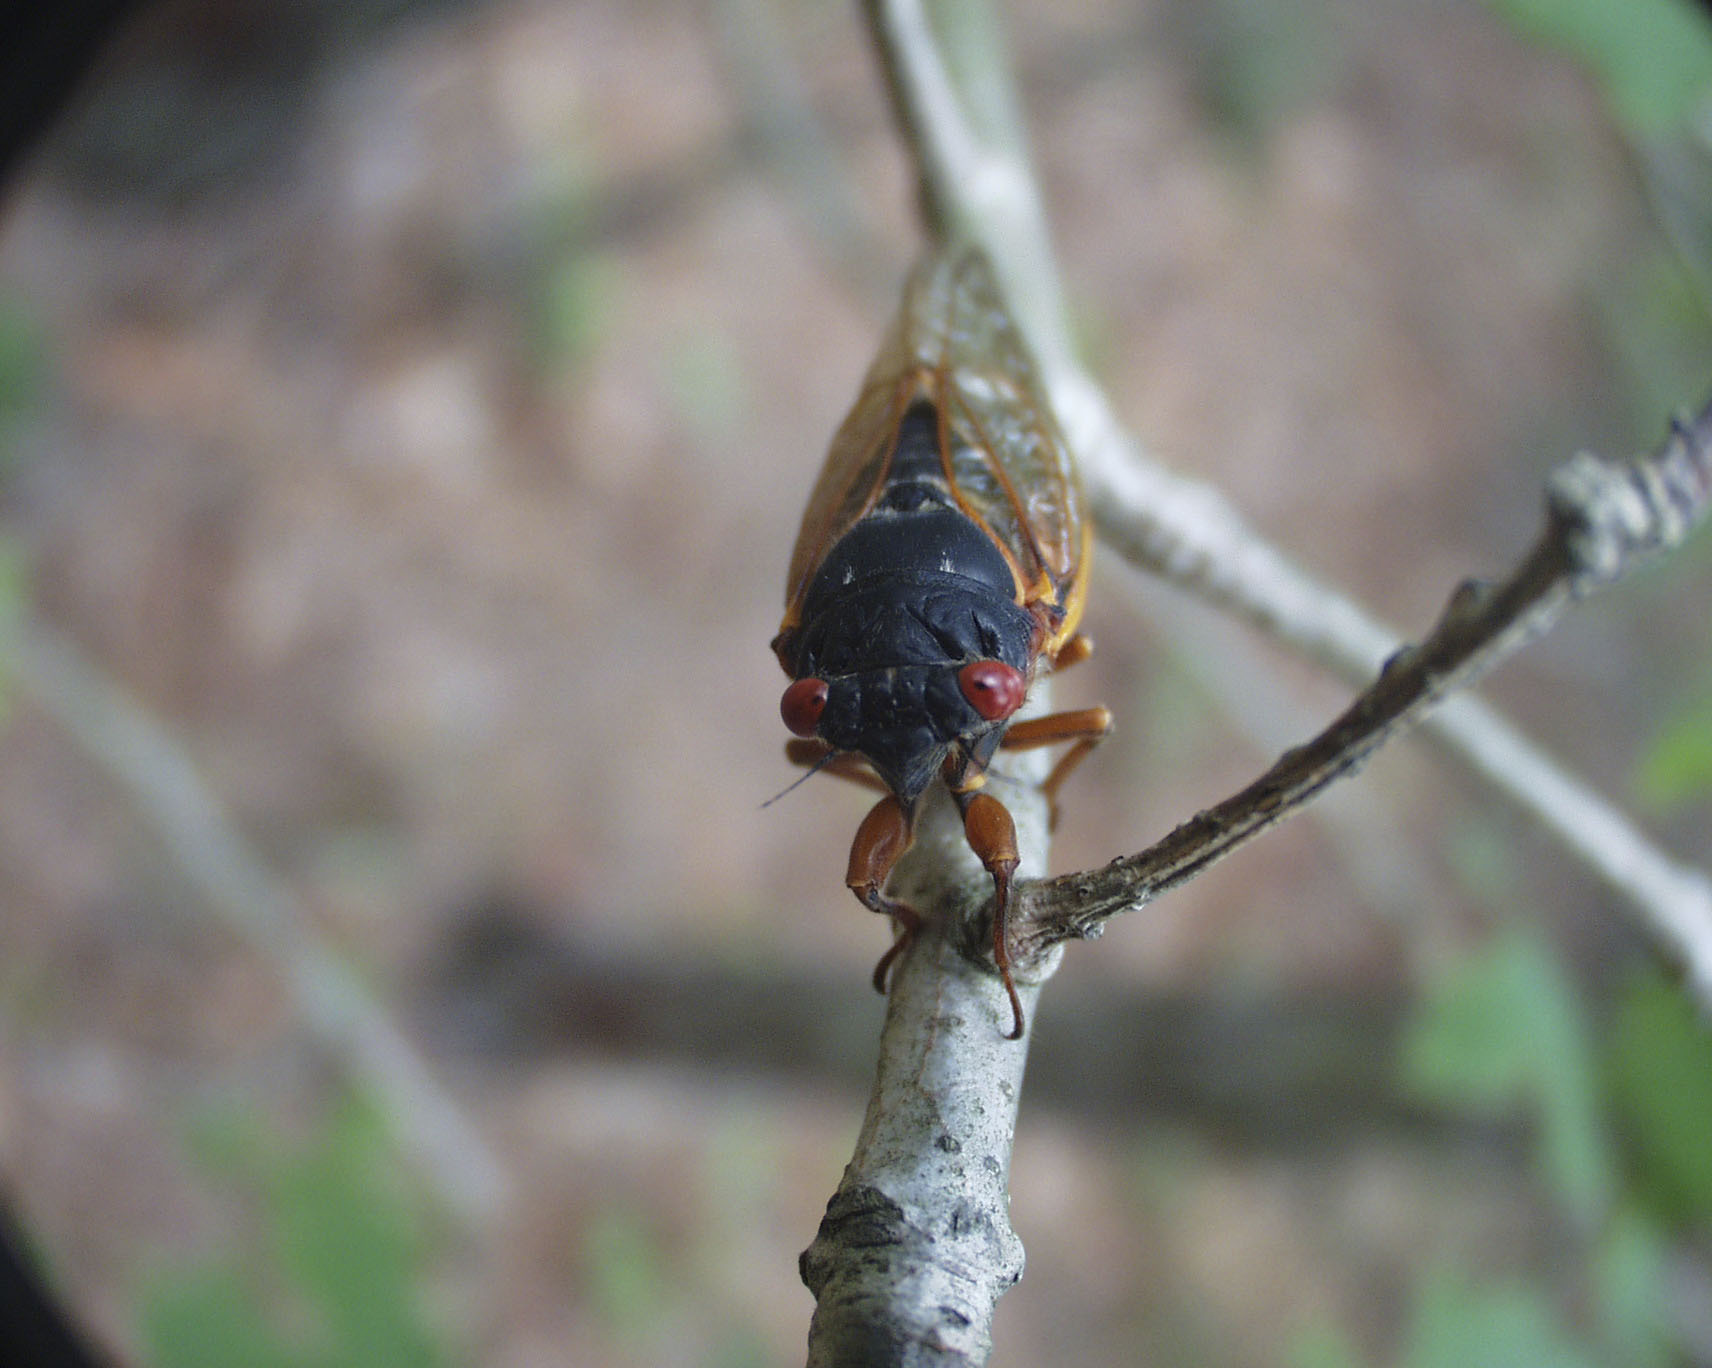 The cicadas with the red eyes are periodical cicadas, the same ones that will be emerging in large numbers this year in Maryland and some other areas. It is unlikely we'll see them on Long Island.  These cicadas have a 17-year life cycle and emerge around late May to early June.    COURTESY DANIEL OWEN  GILREIN